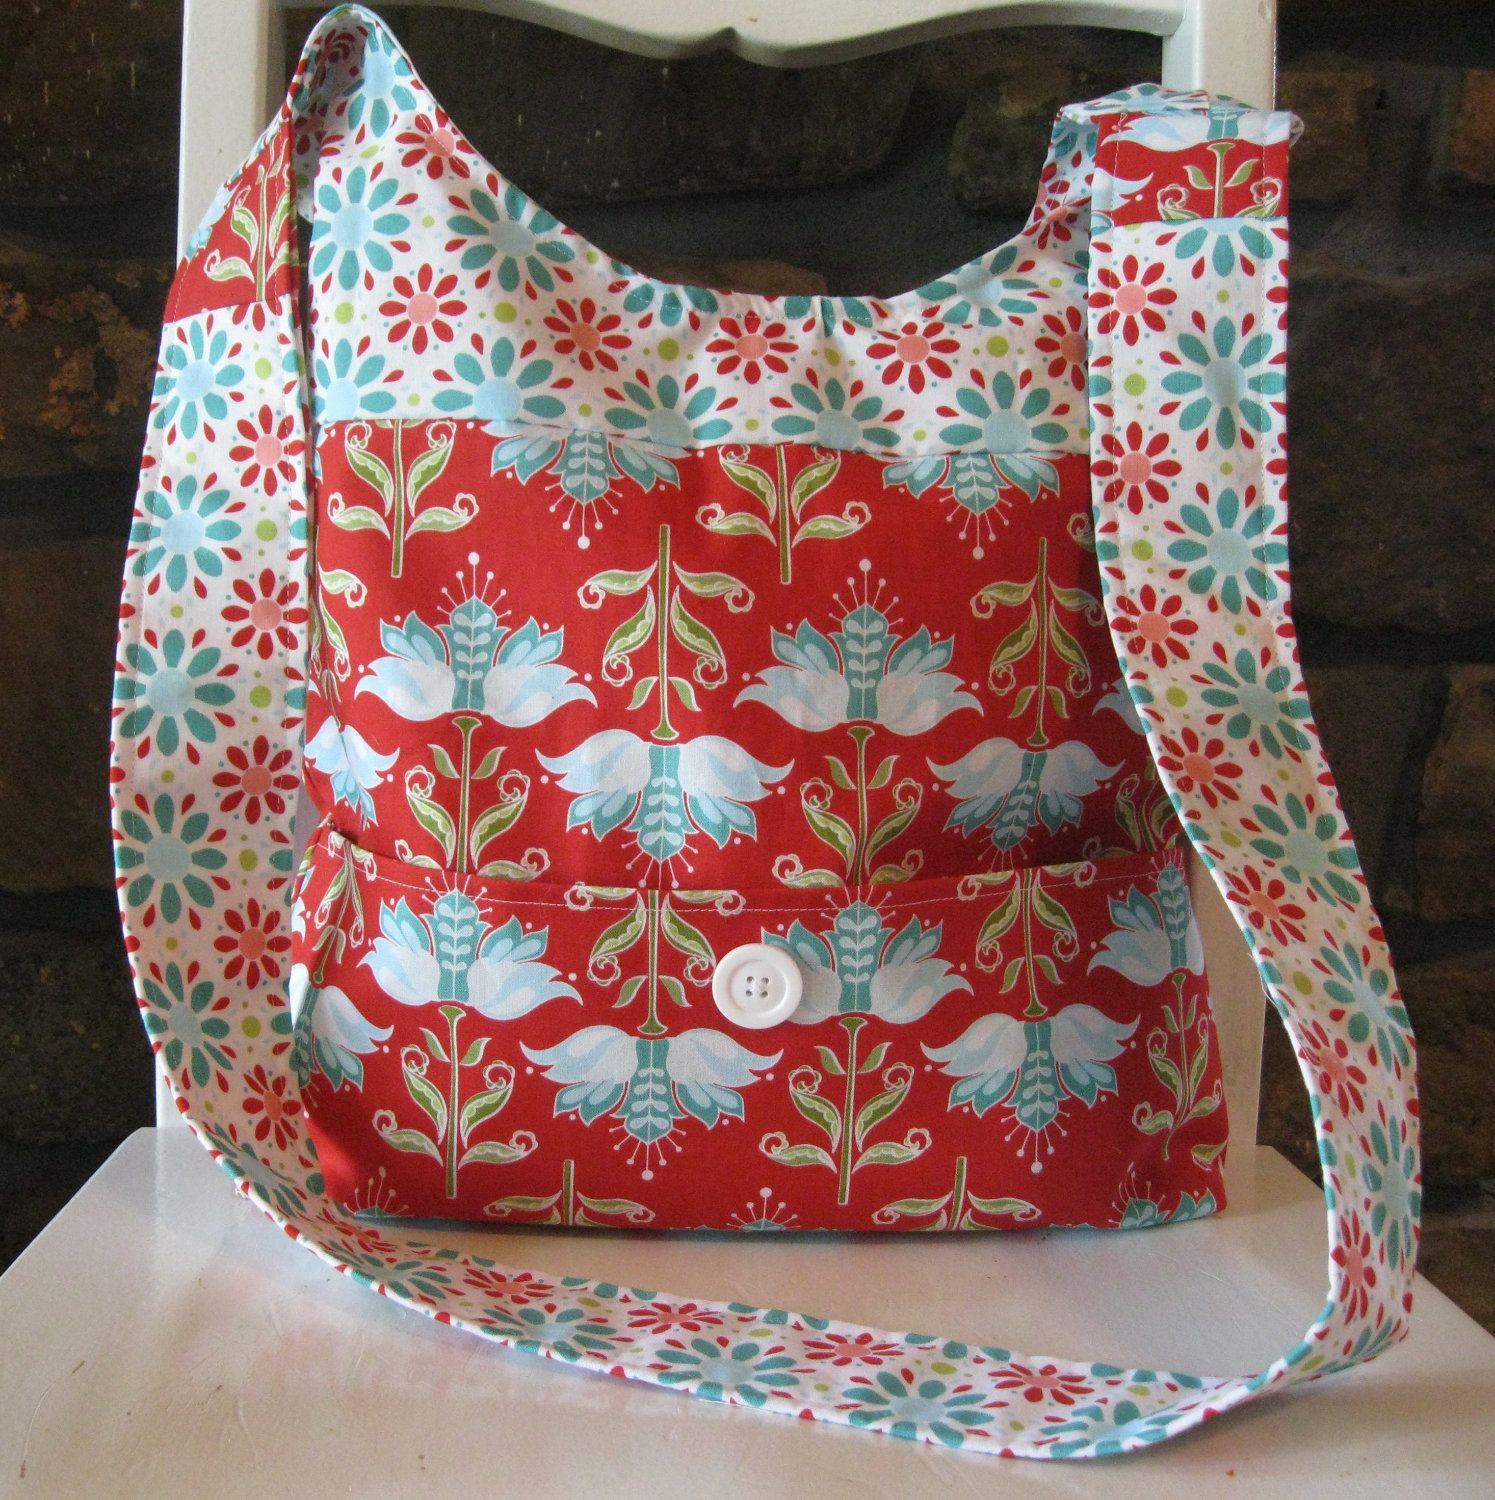 87a20596396b Handmade Fabric Bags Purses - Shoulder Bag - Riley Blake - Red and ...